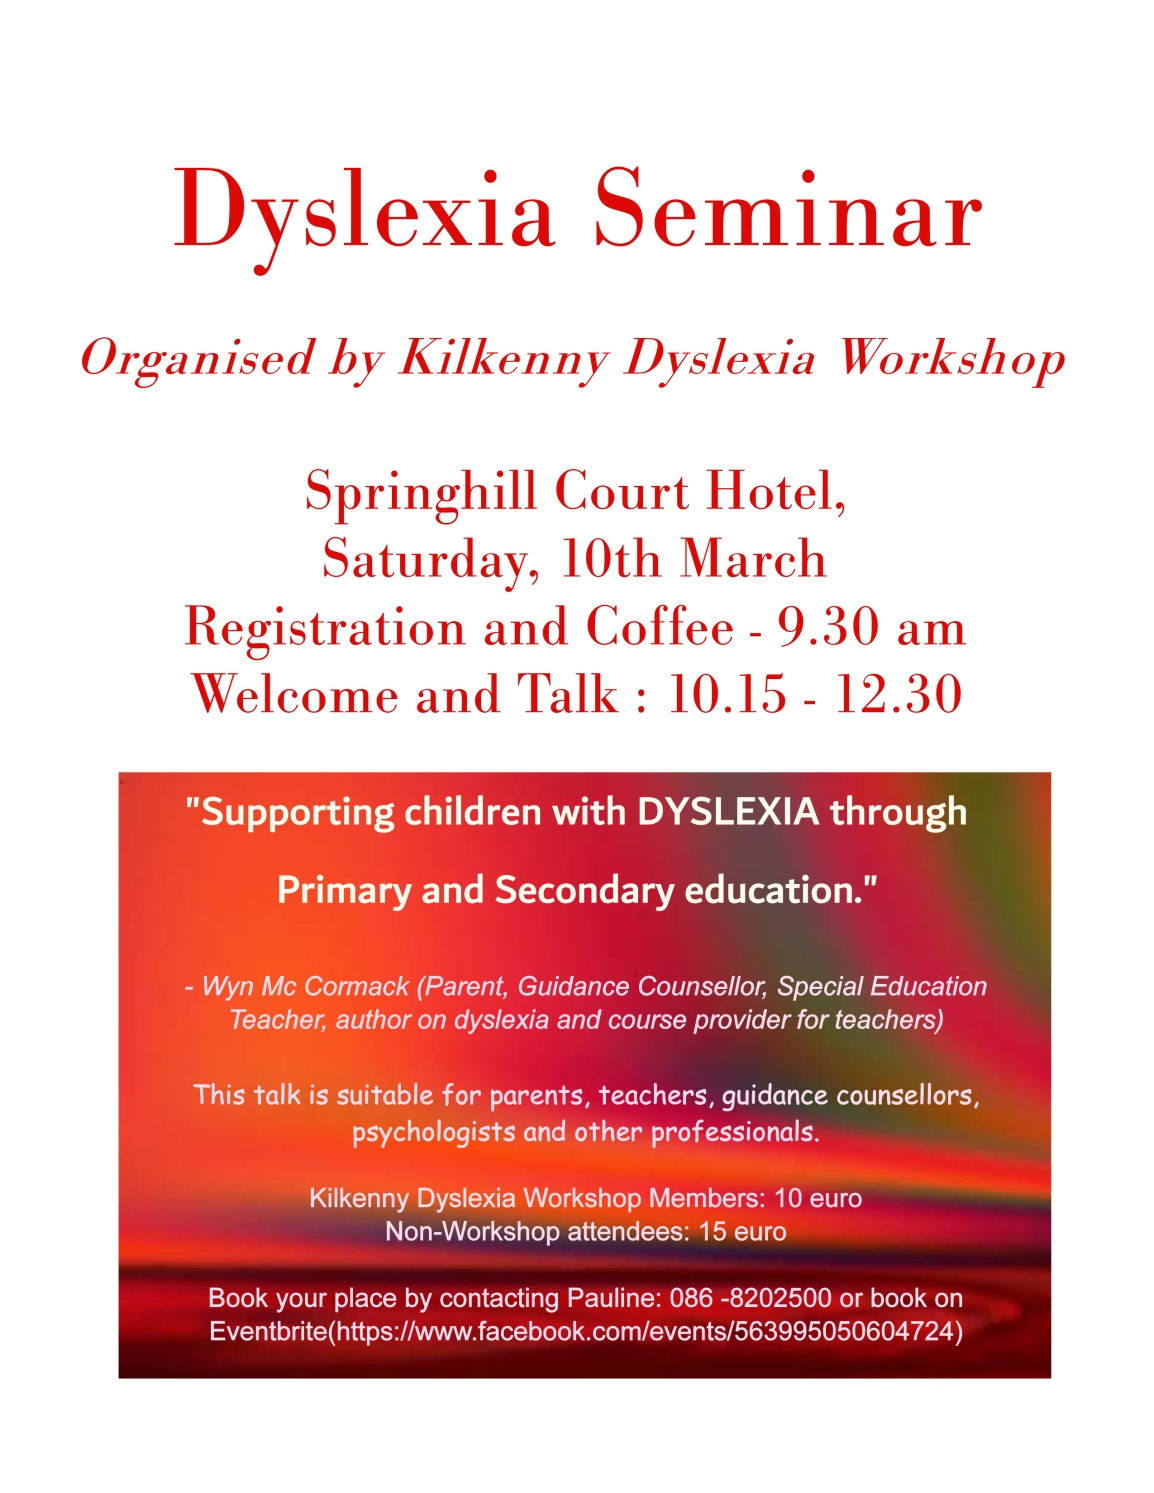 Supporting Children with Dyslexia through Primary and Secondary Education